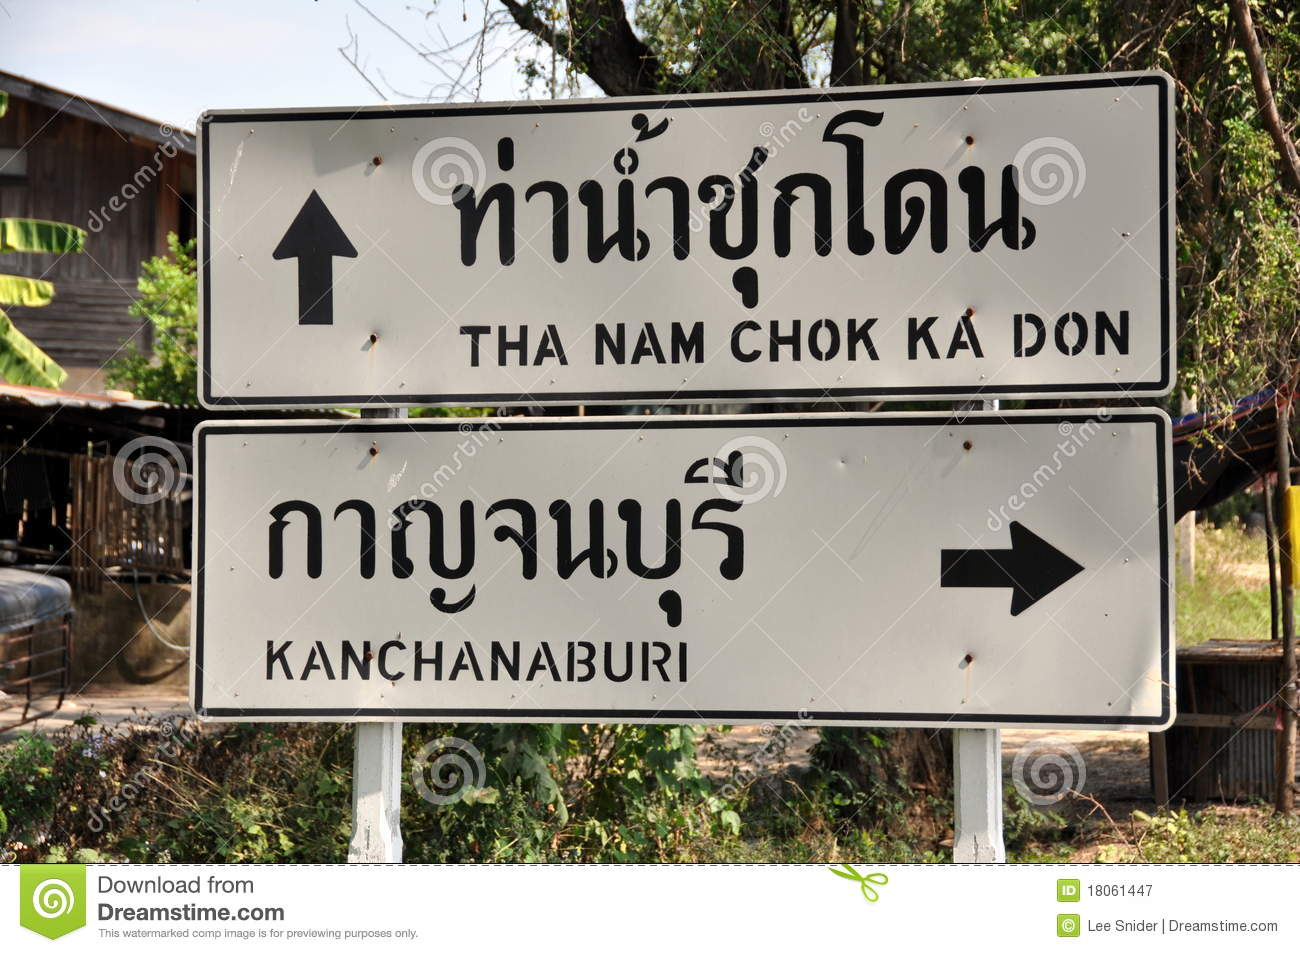 Kanchanaburi, Thailand Road Signs Editorial Photography. Tonsil Removed Signs. Nursery Kid Banners. Irish Murals. Jewelry Banners. Mario Banners. Iron Cross Decals. House Stark Decals. Maryam Logo